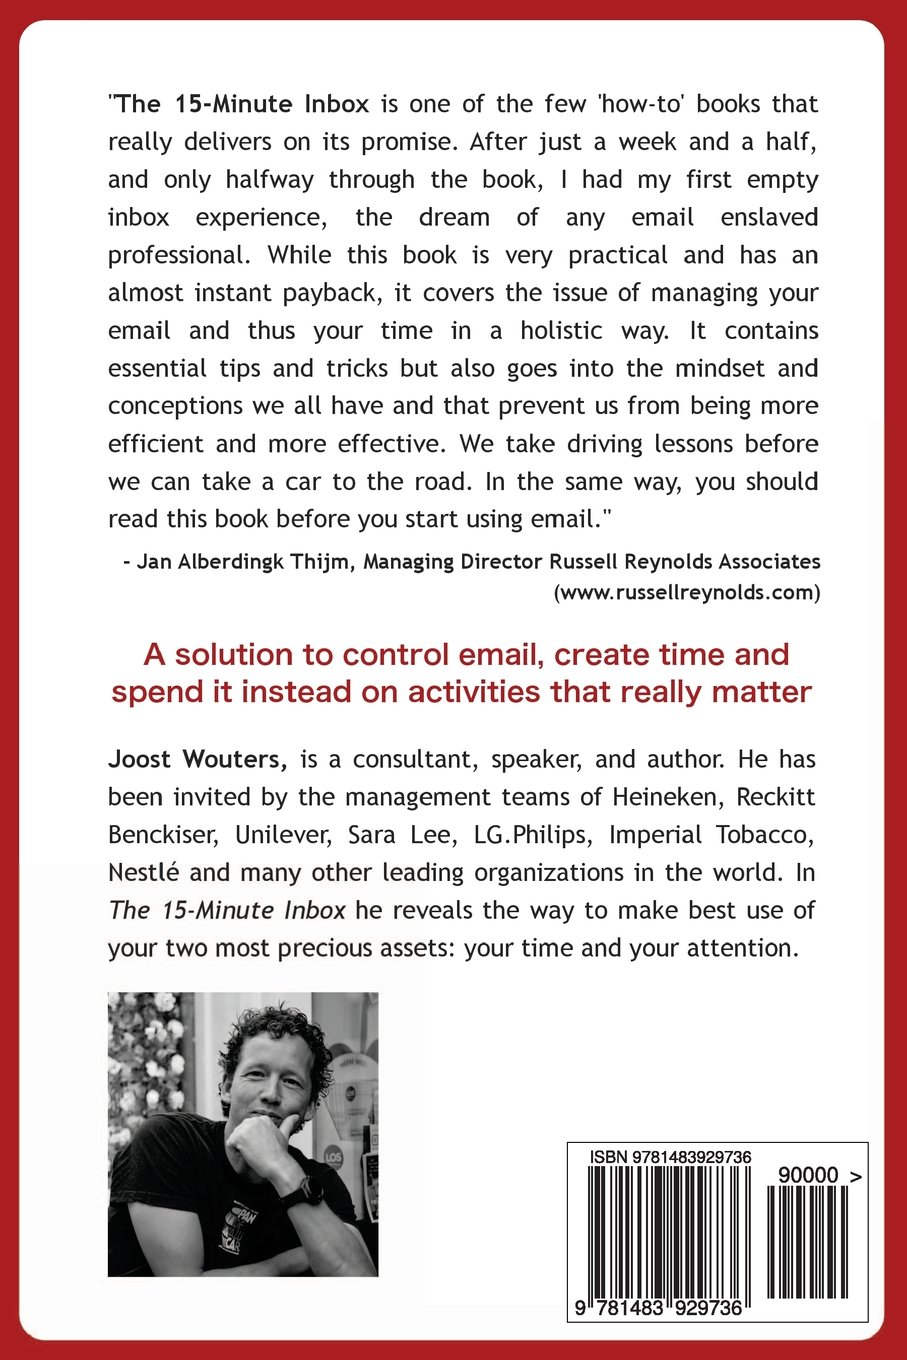 The 15-Minute Inbox: Control Email. Create Time. Lead Your Business.: Amazon.es: Joost Wouters: Libros en idiomas extranjeros